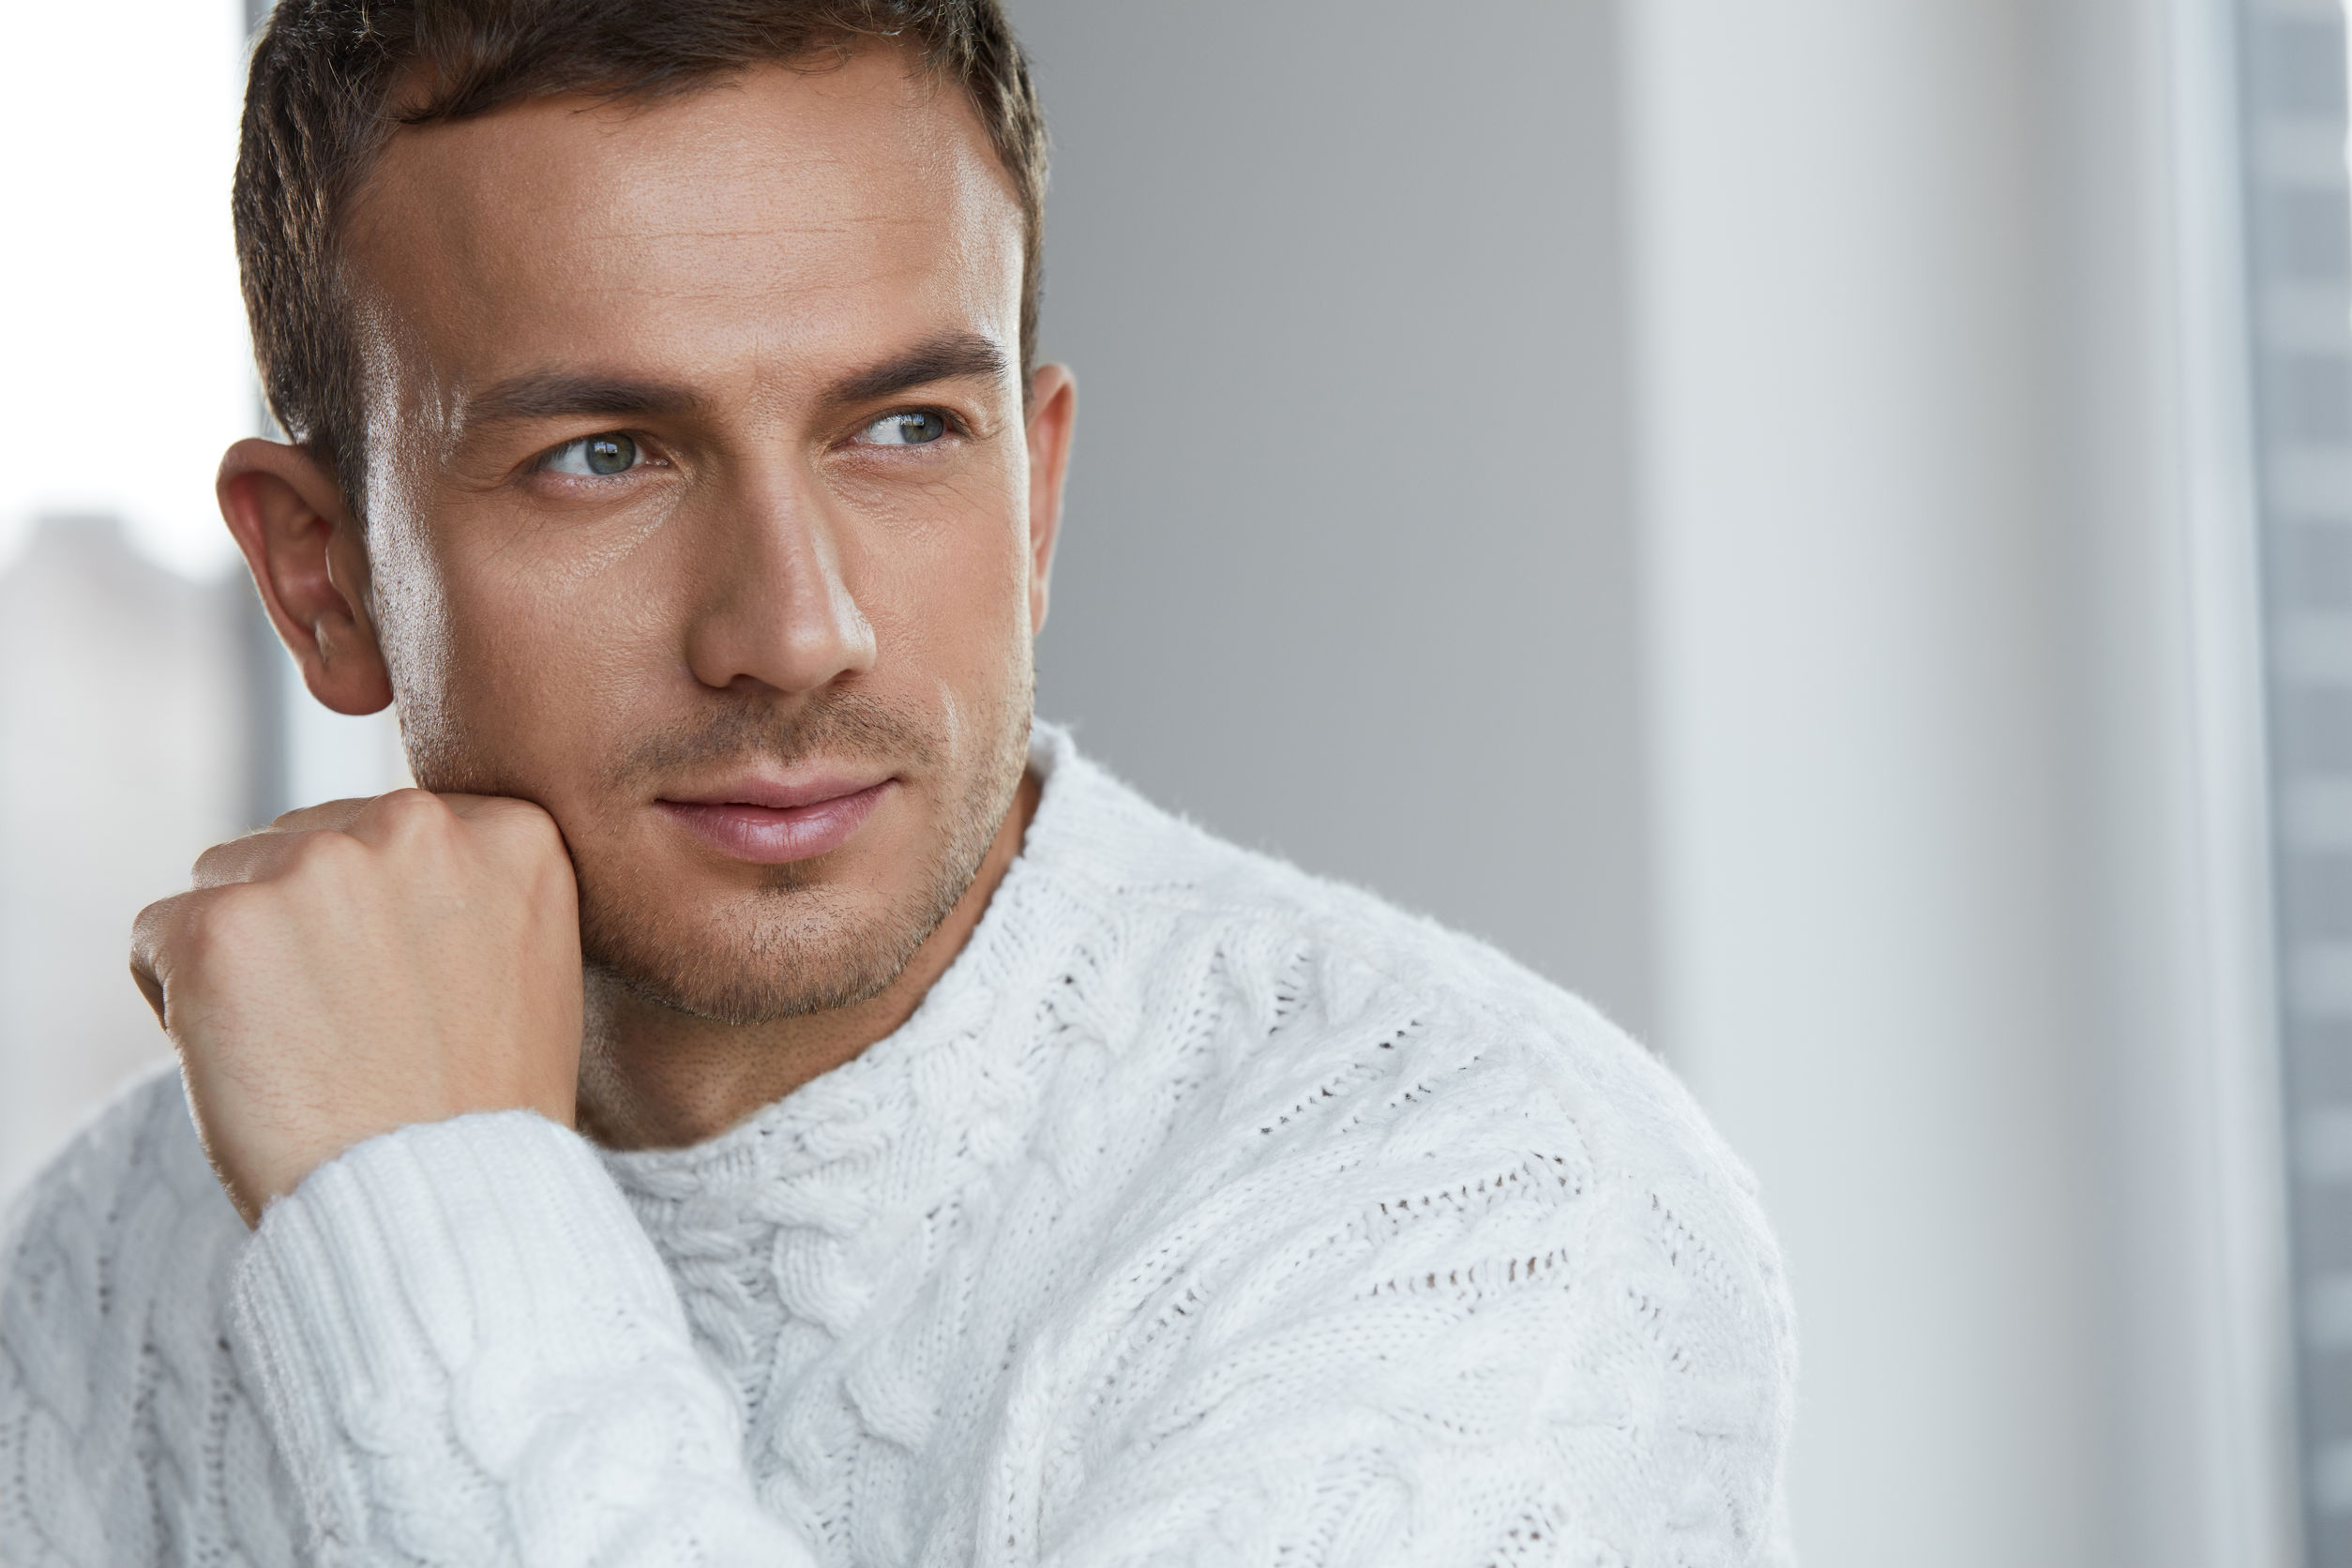 Portrait Of Handsome Young Man With Beautiful Face, Soft Skin